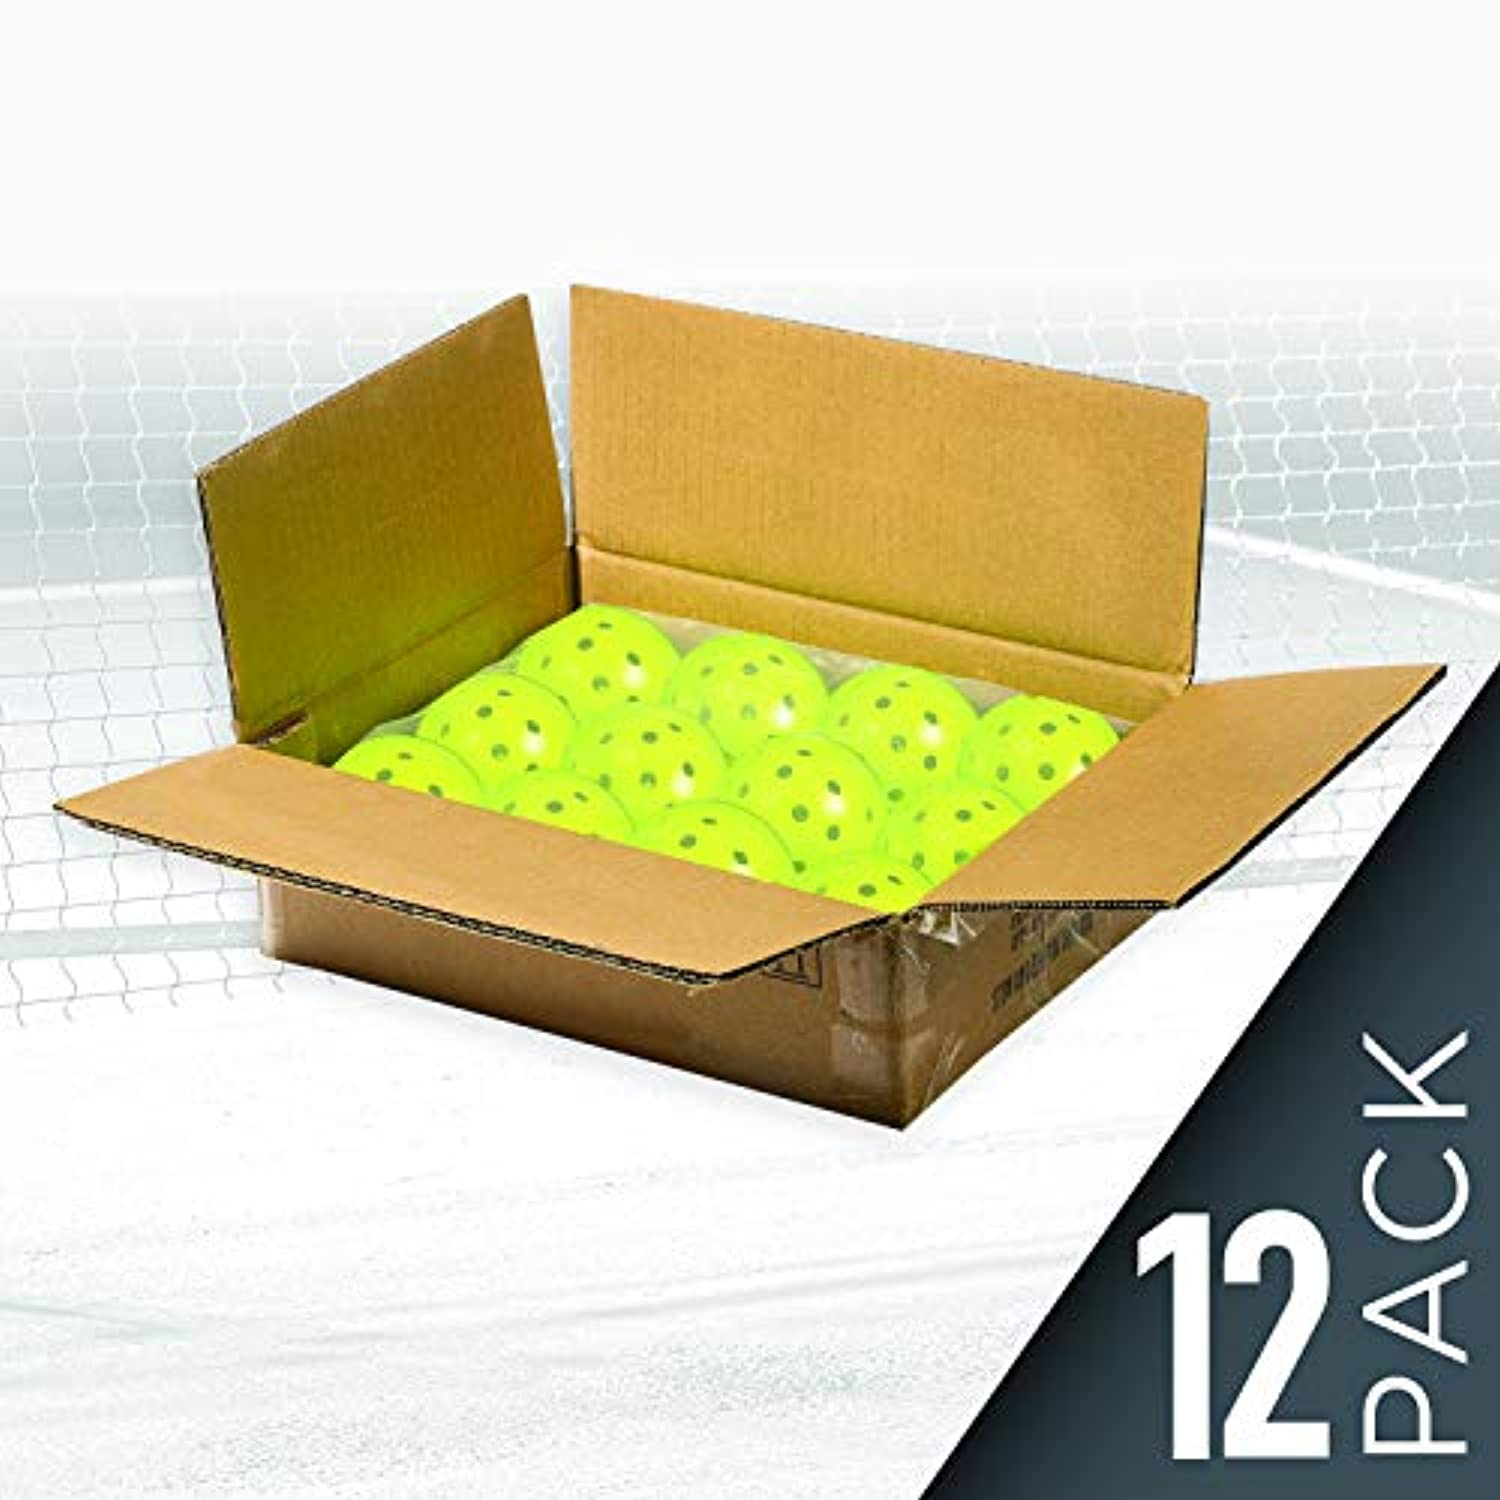 Classier: Buy Franklin Sports Franklin Sports X-40 Outdoor Performance Pickleballs - 12 Pack Bulk - USAPA Approved - Optic - Official Ball of US Open Pickleball Championships